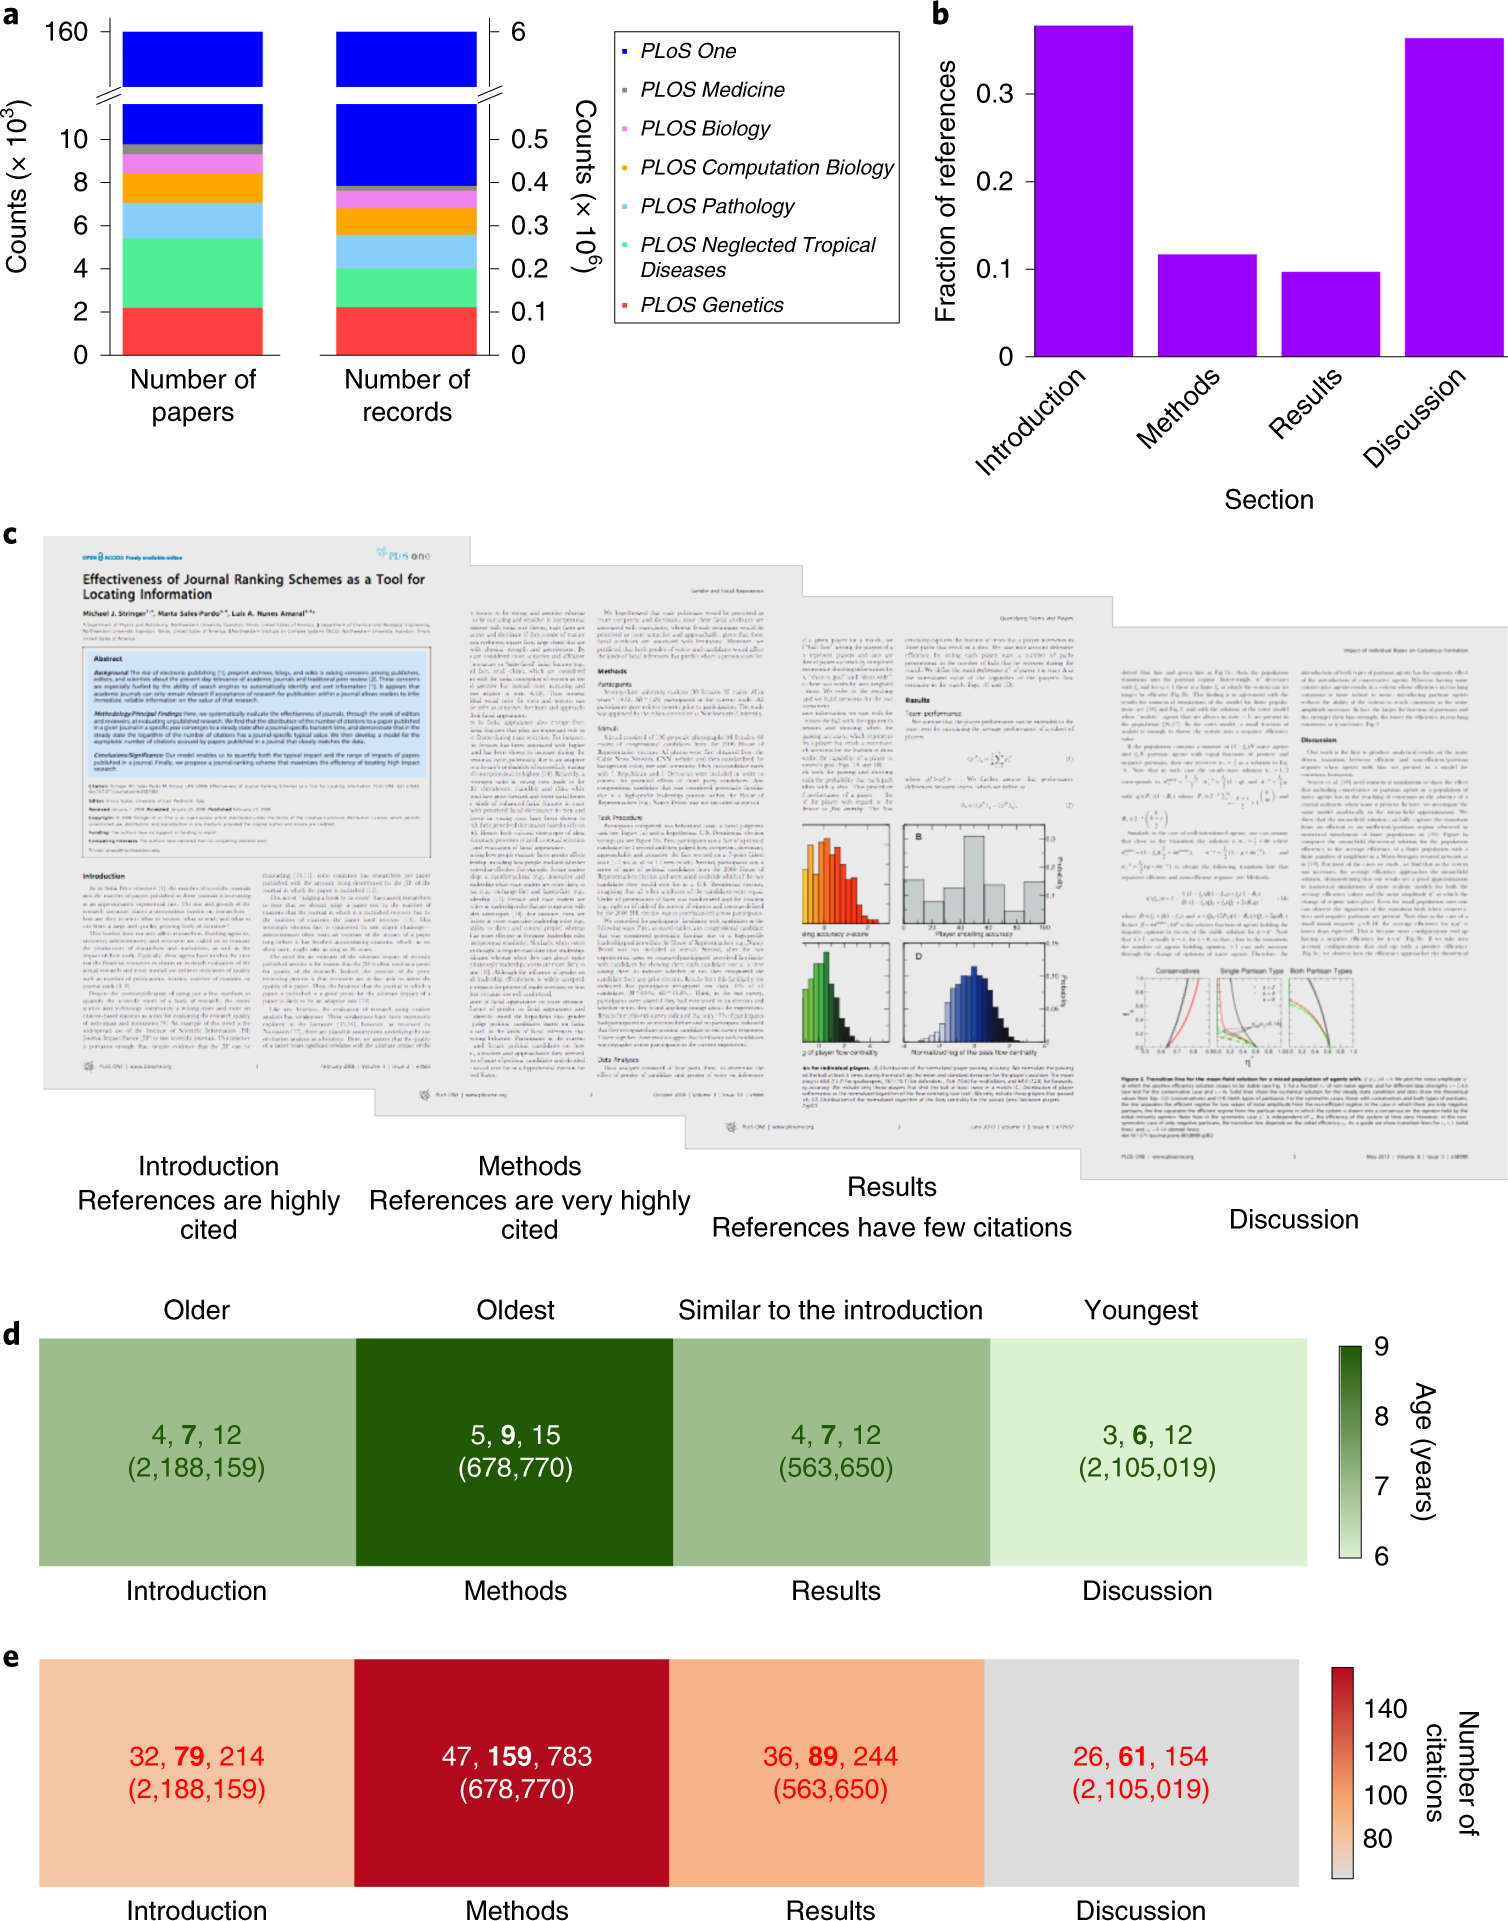 Large-scale analysis of micro-level citation patterns